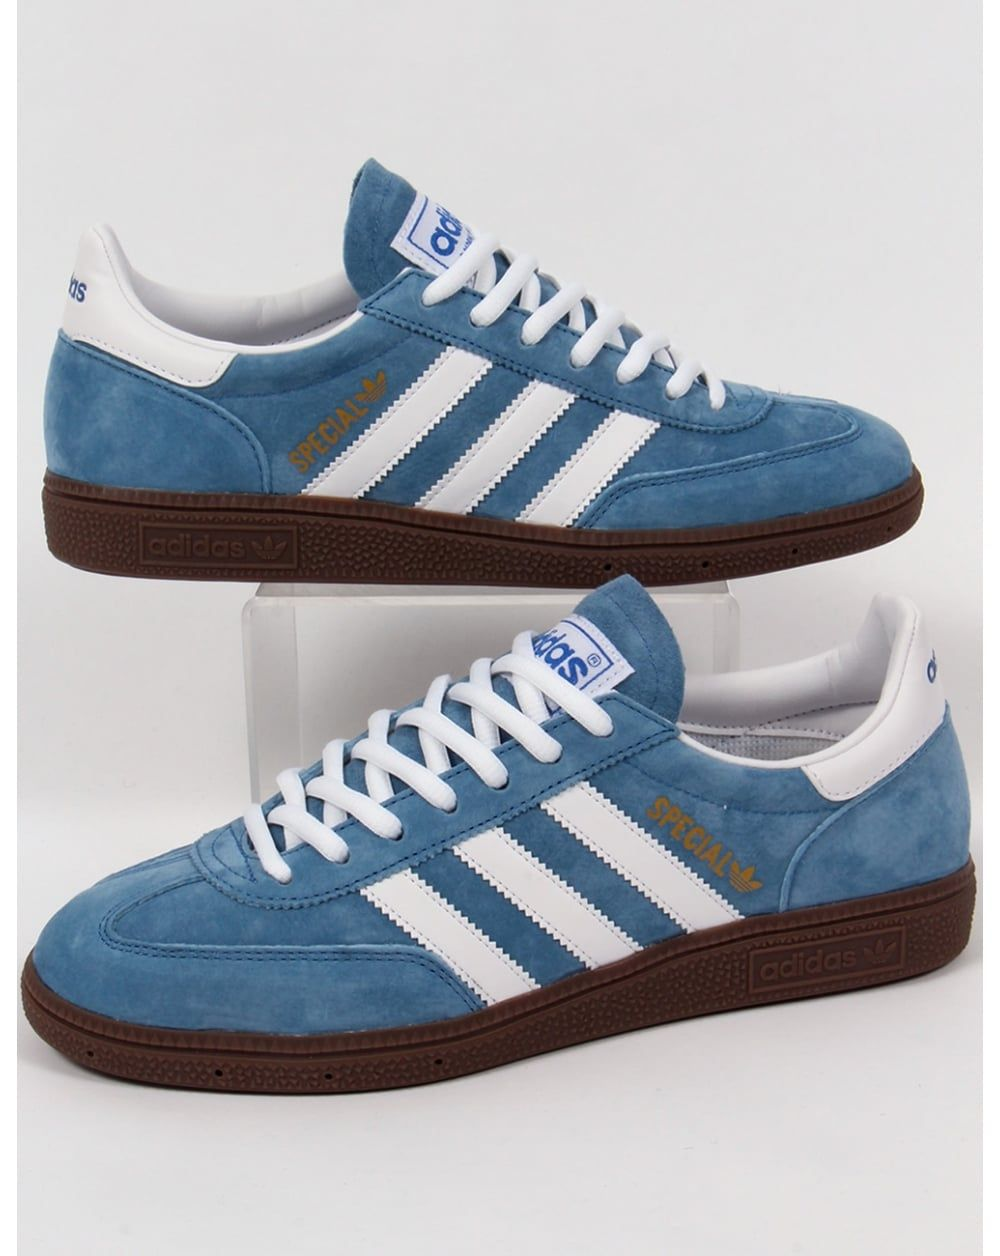 15a8719c20 Adidas Handball Spezial Trainers Royal Blue/white, originals, special,mens,  shoes, sneakers